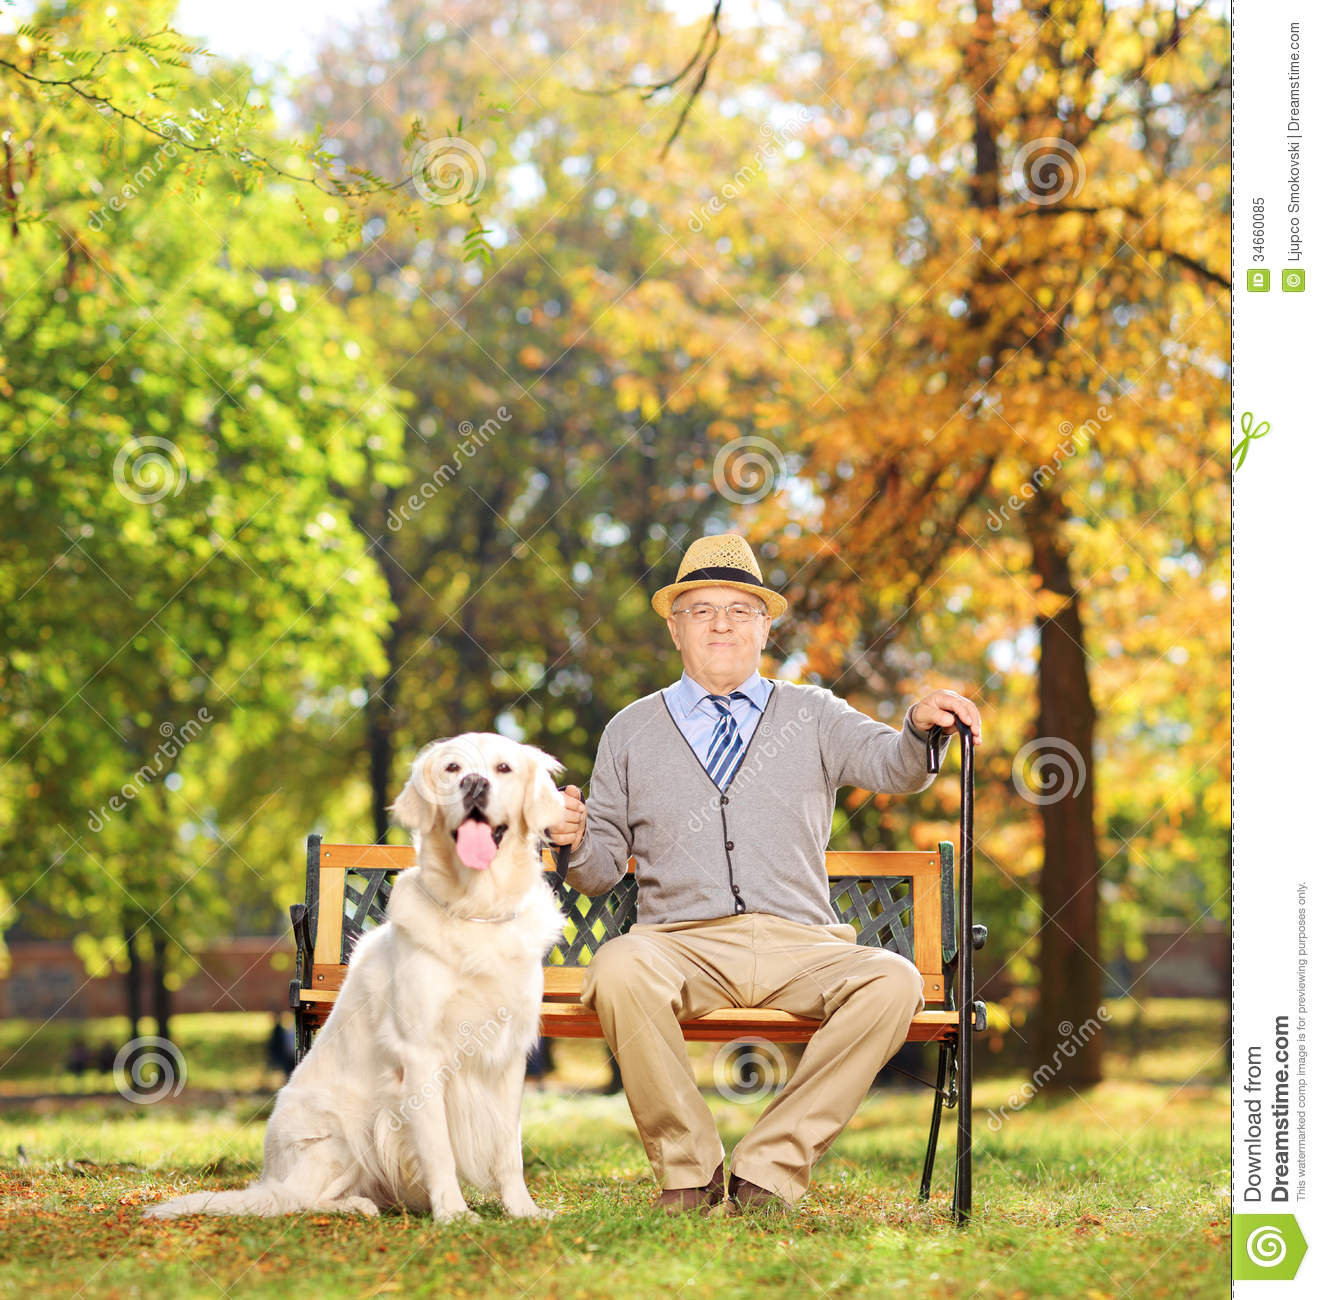 Man On Dog : Senior man sitting on a bench with his dog in park